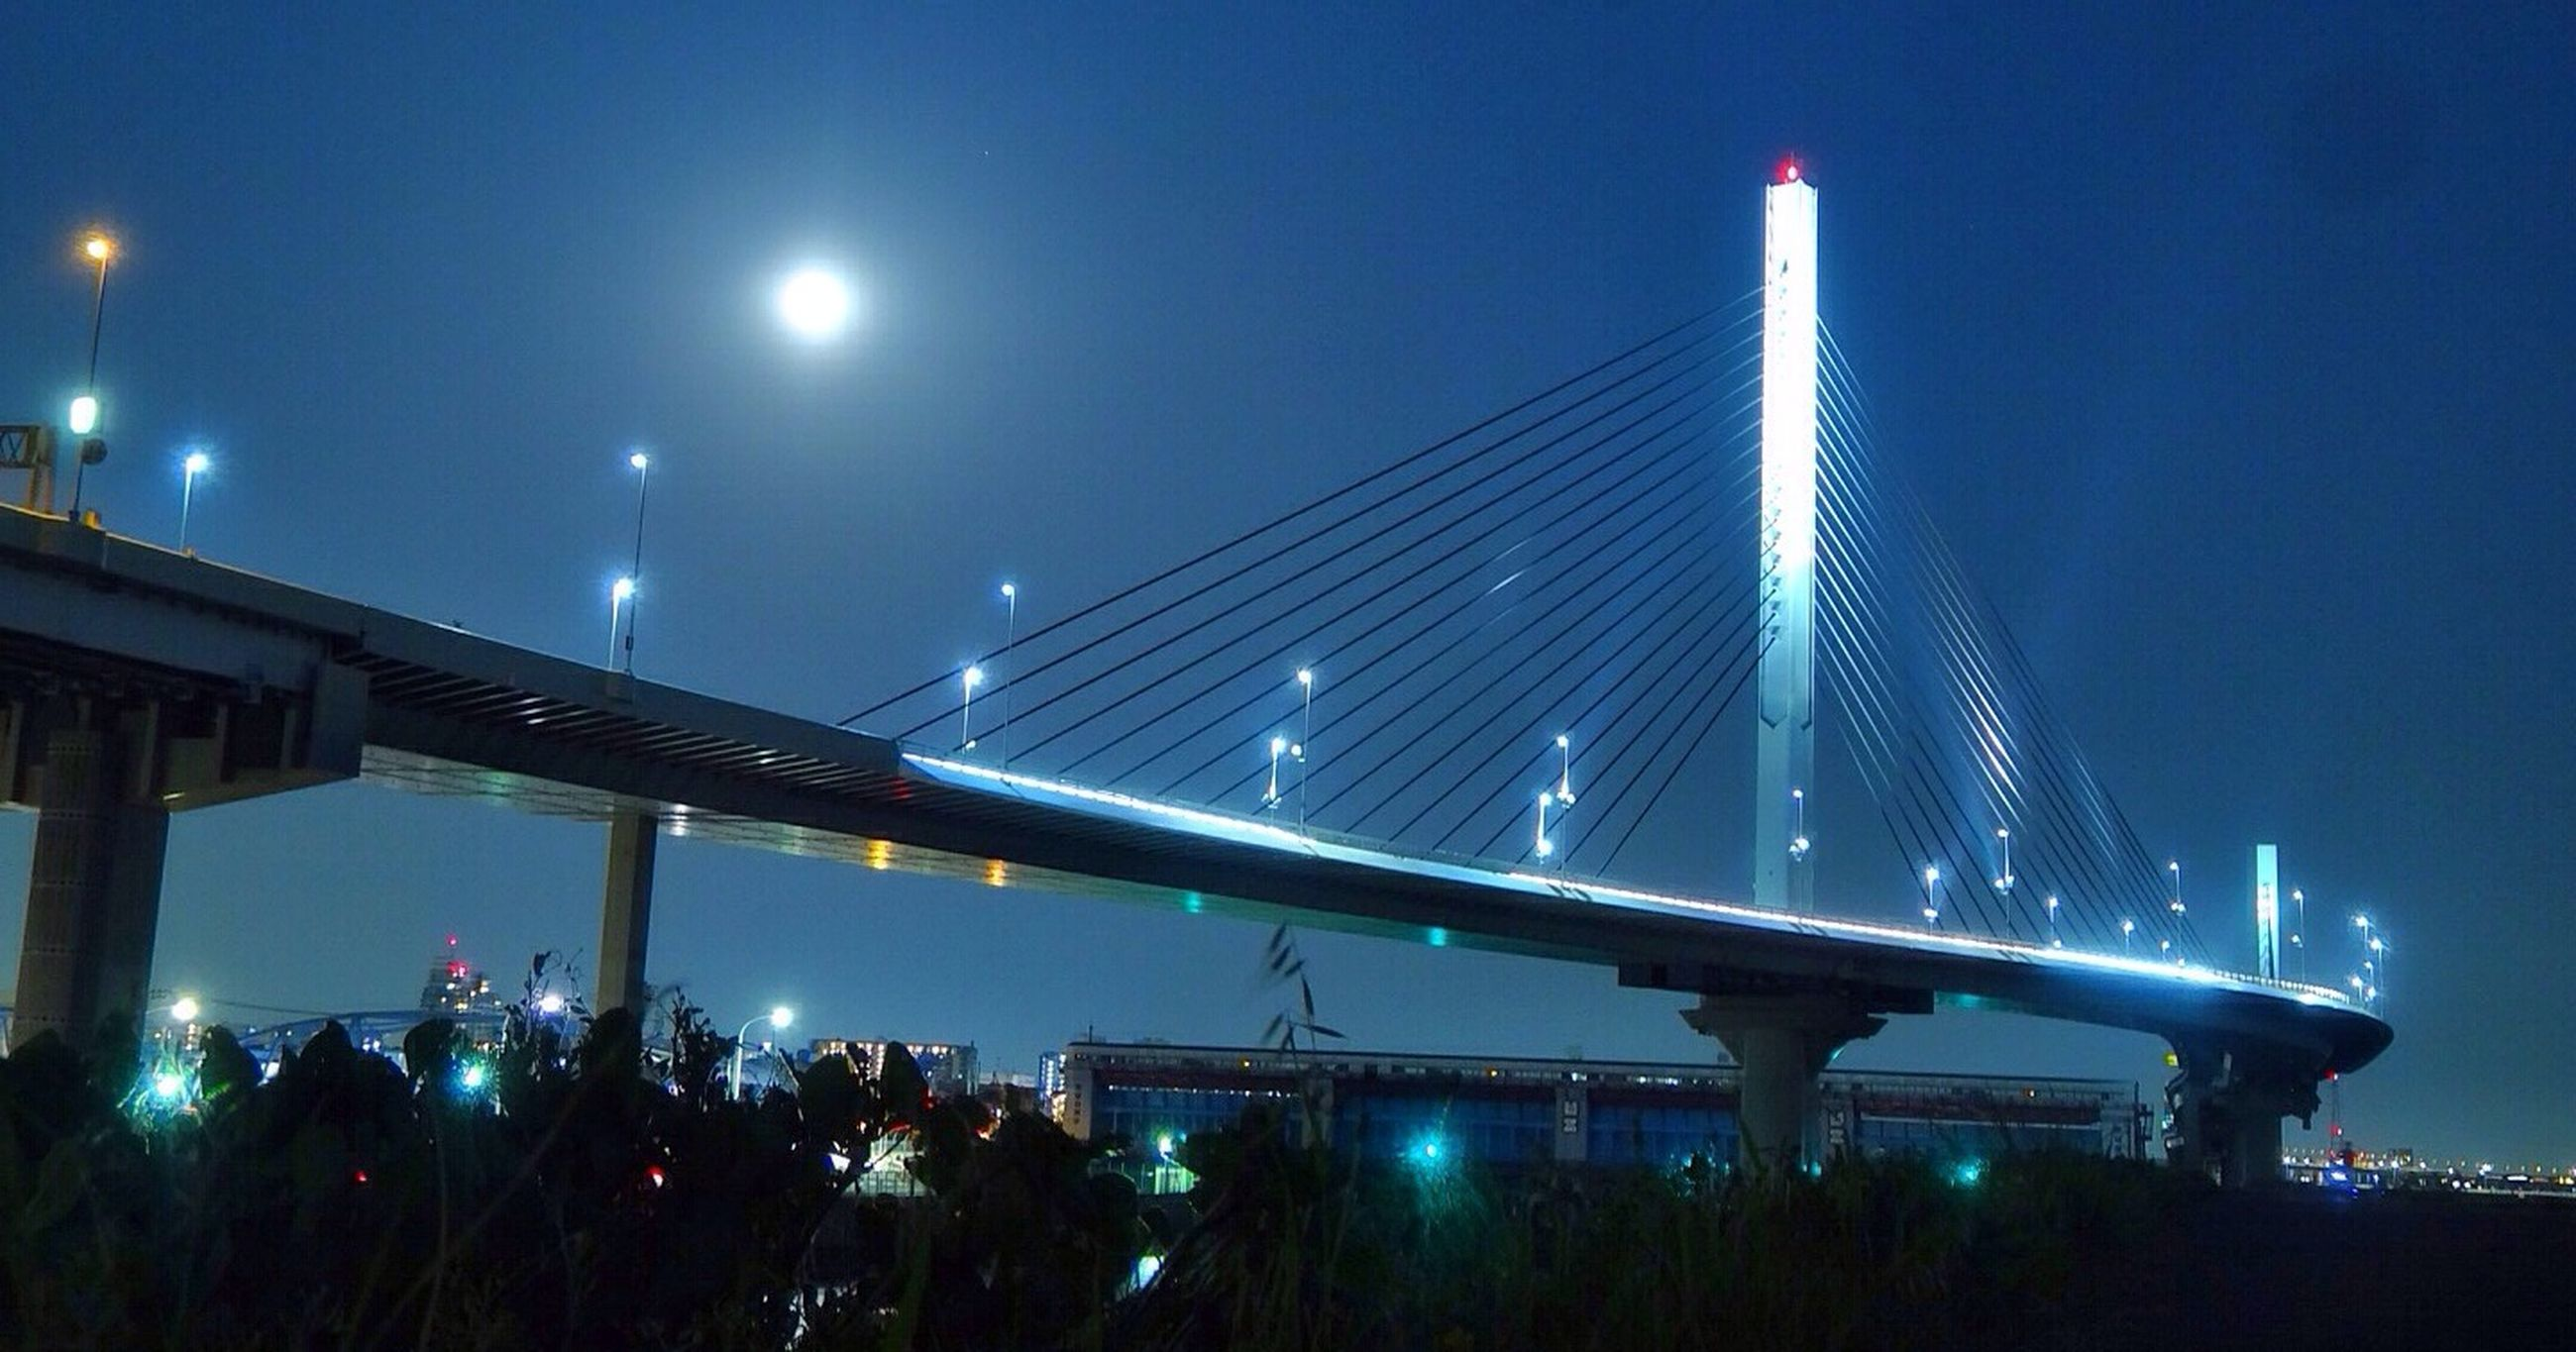 illuminated, night, low angle view, architecture, built structure, connection, sky, bridge - man made structure, lighting equipment, blue, engineering, street light, modern, light - natural phenomenon, city, railing, transportation, moon, no people, outdoors